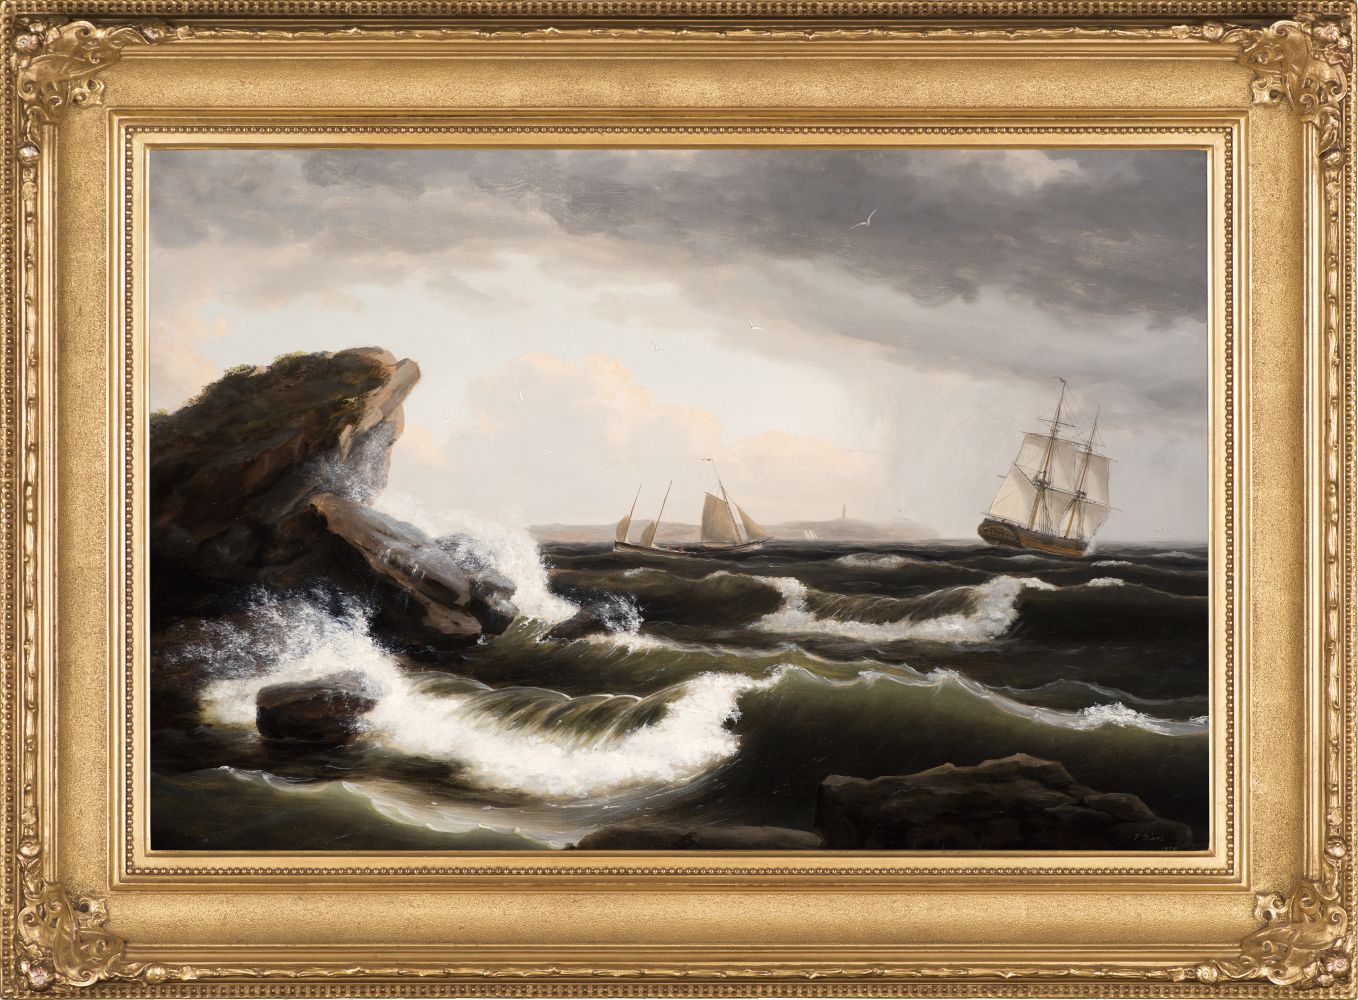 Stormy seascape off the coast of Maine by Thomas Birch (framed)